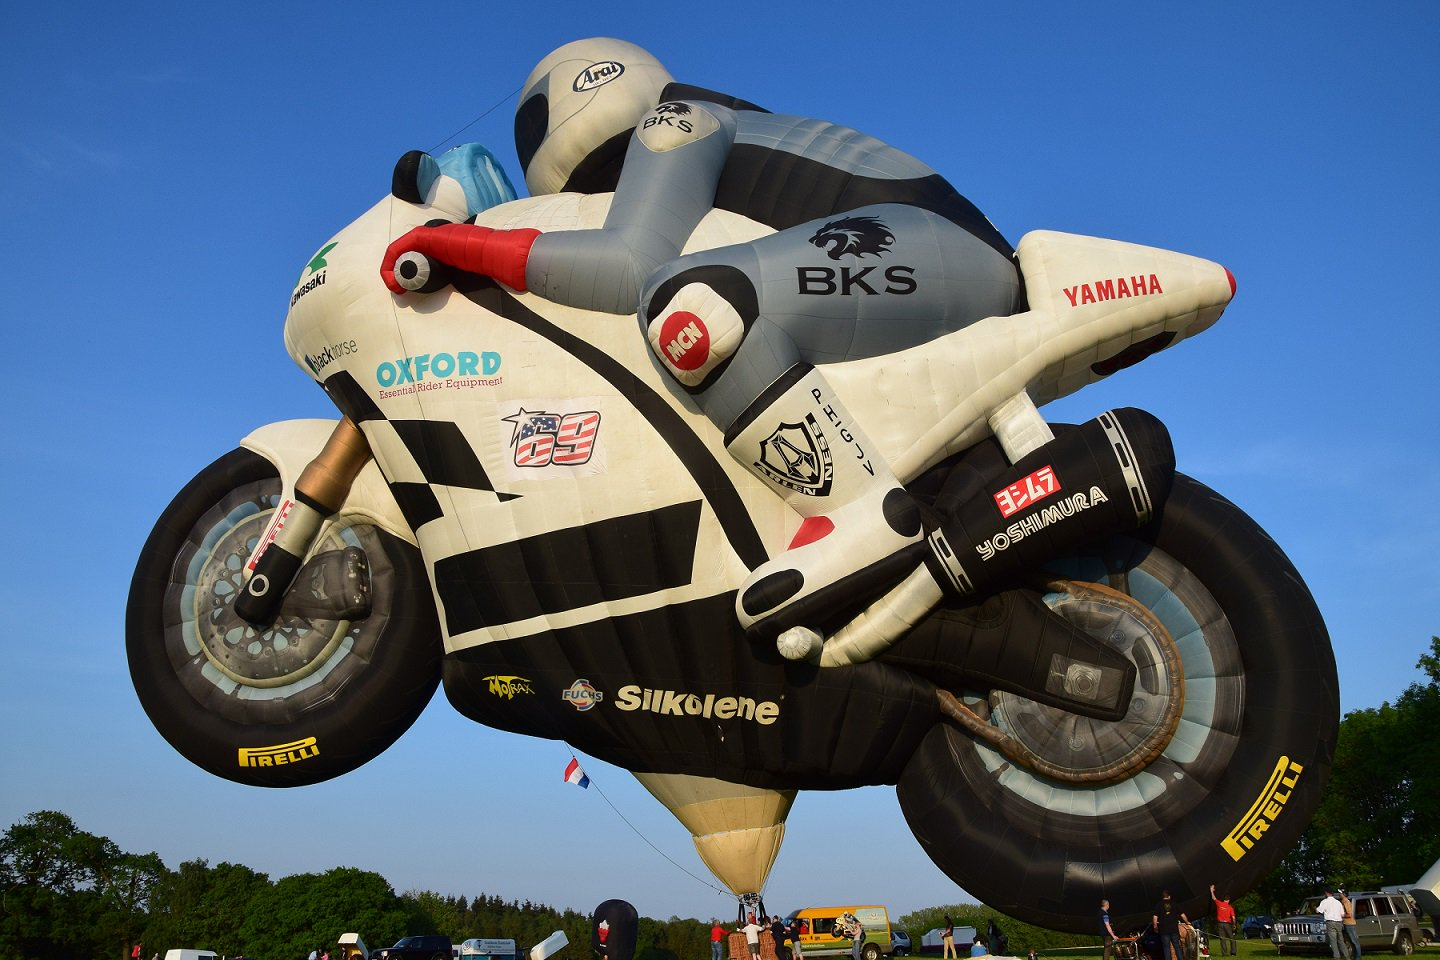 The Lindstrand Superbike Hot Air Balloon.